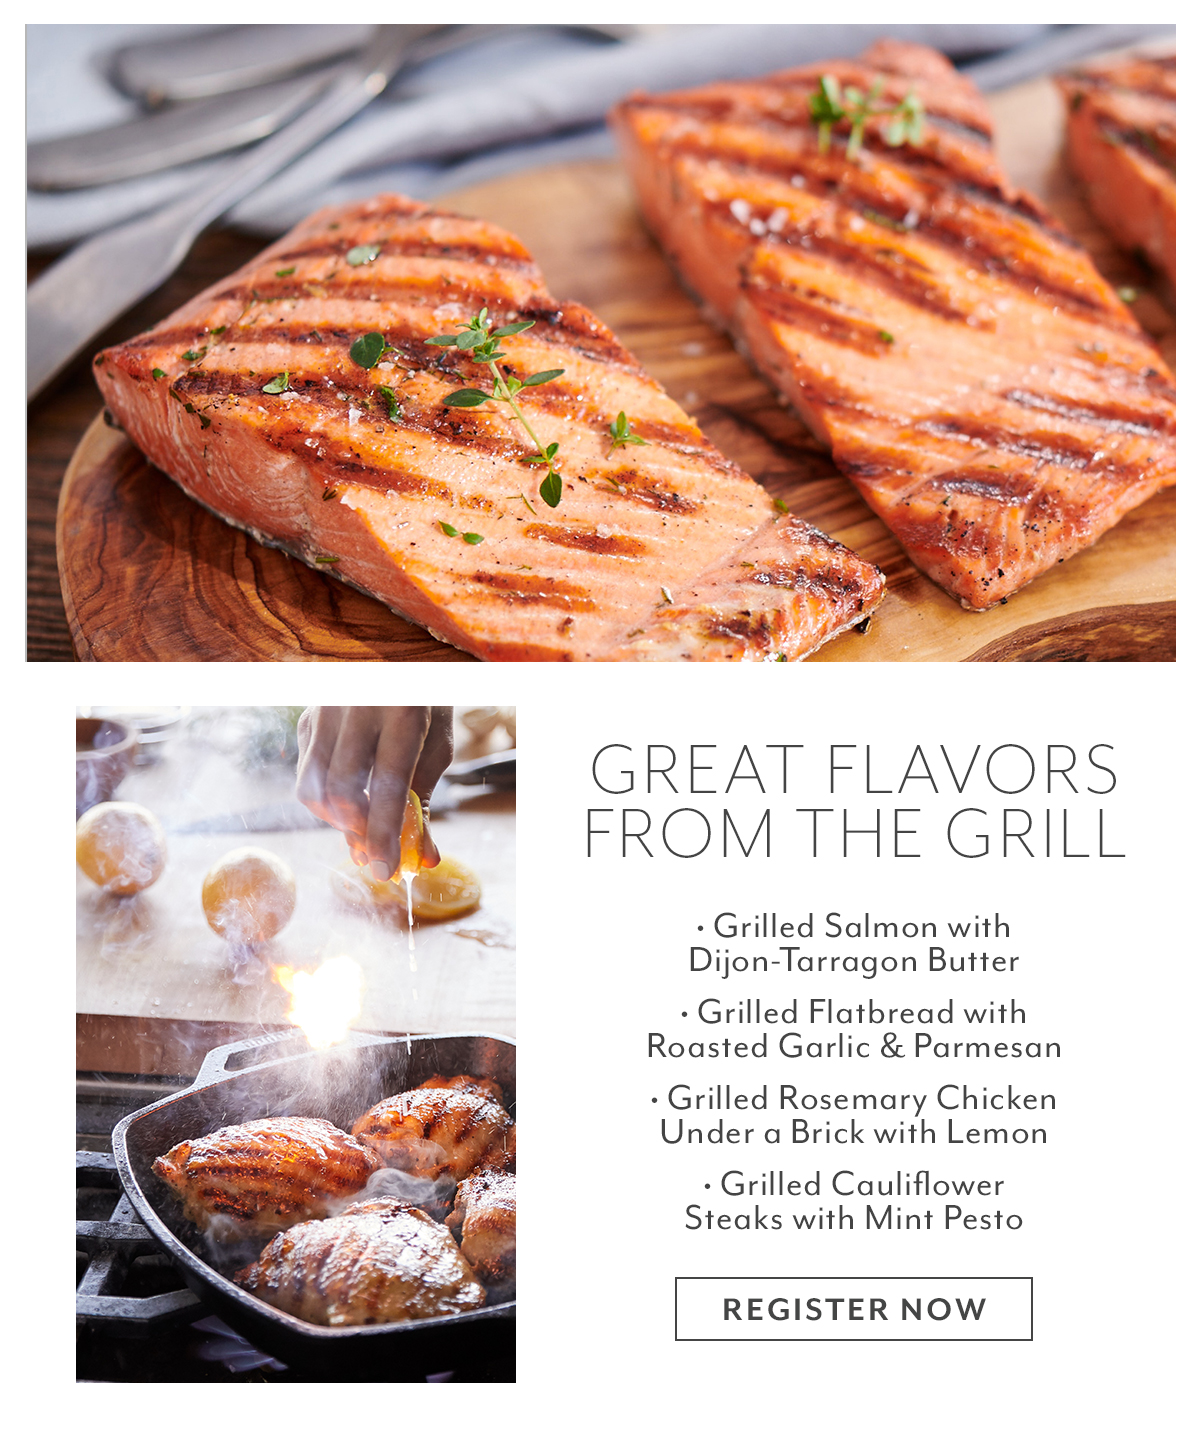 Class: Great Flavors from the Grill